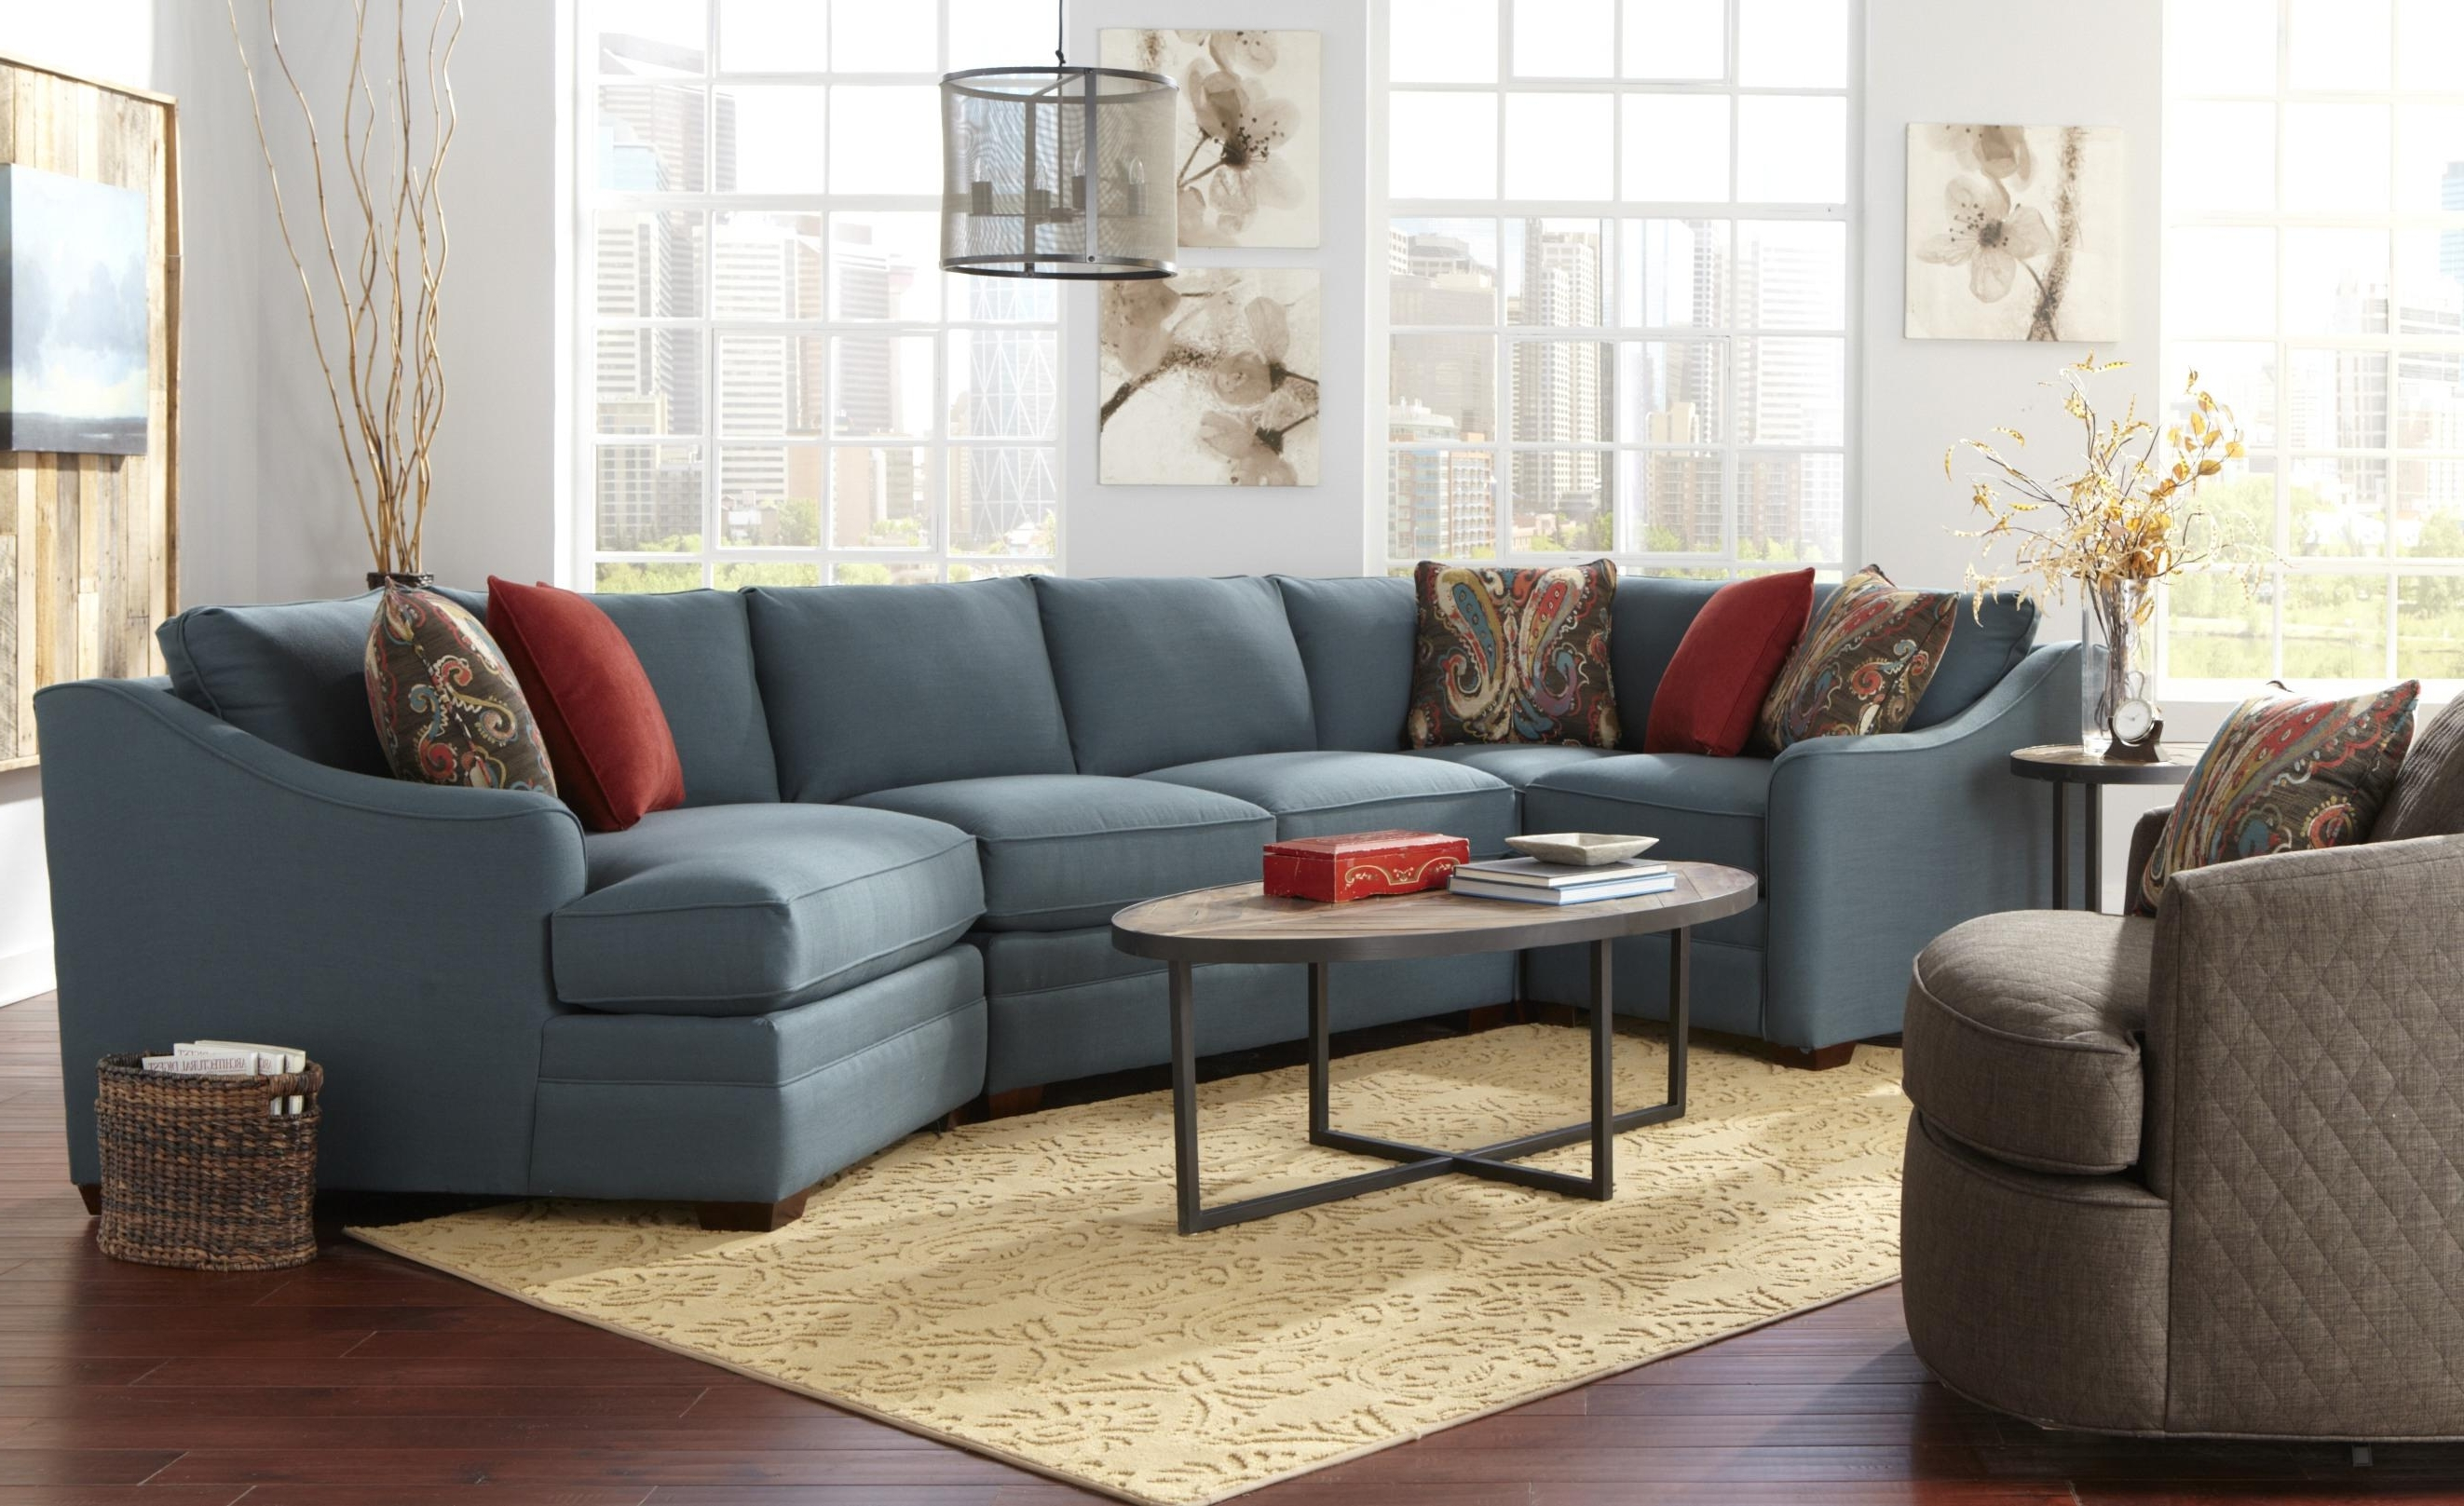 Four Piece <b>customizable</b> Sectional Sofa With Raf Cuddler With Regard To Fashionable Sectional Sofas With Cuddler (View 13 of 20)